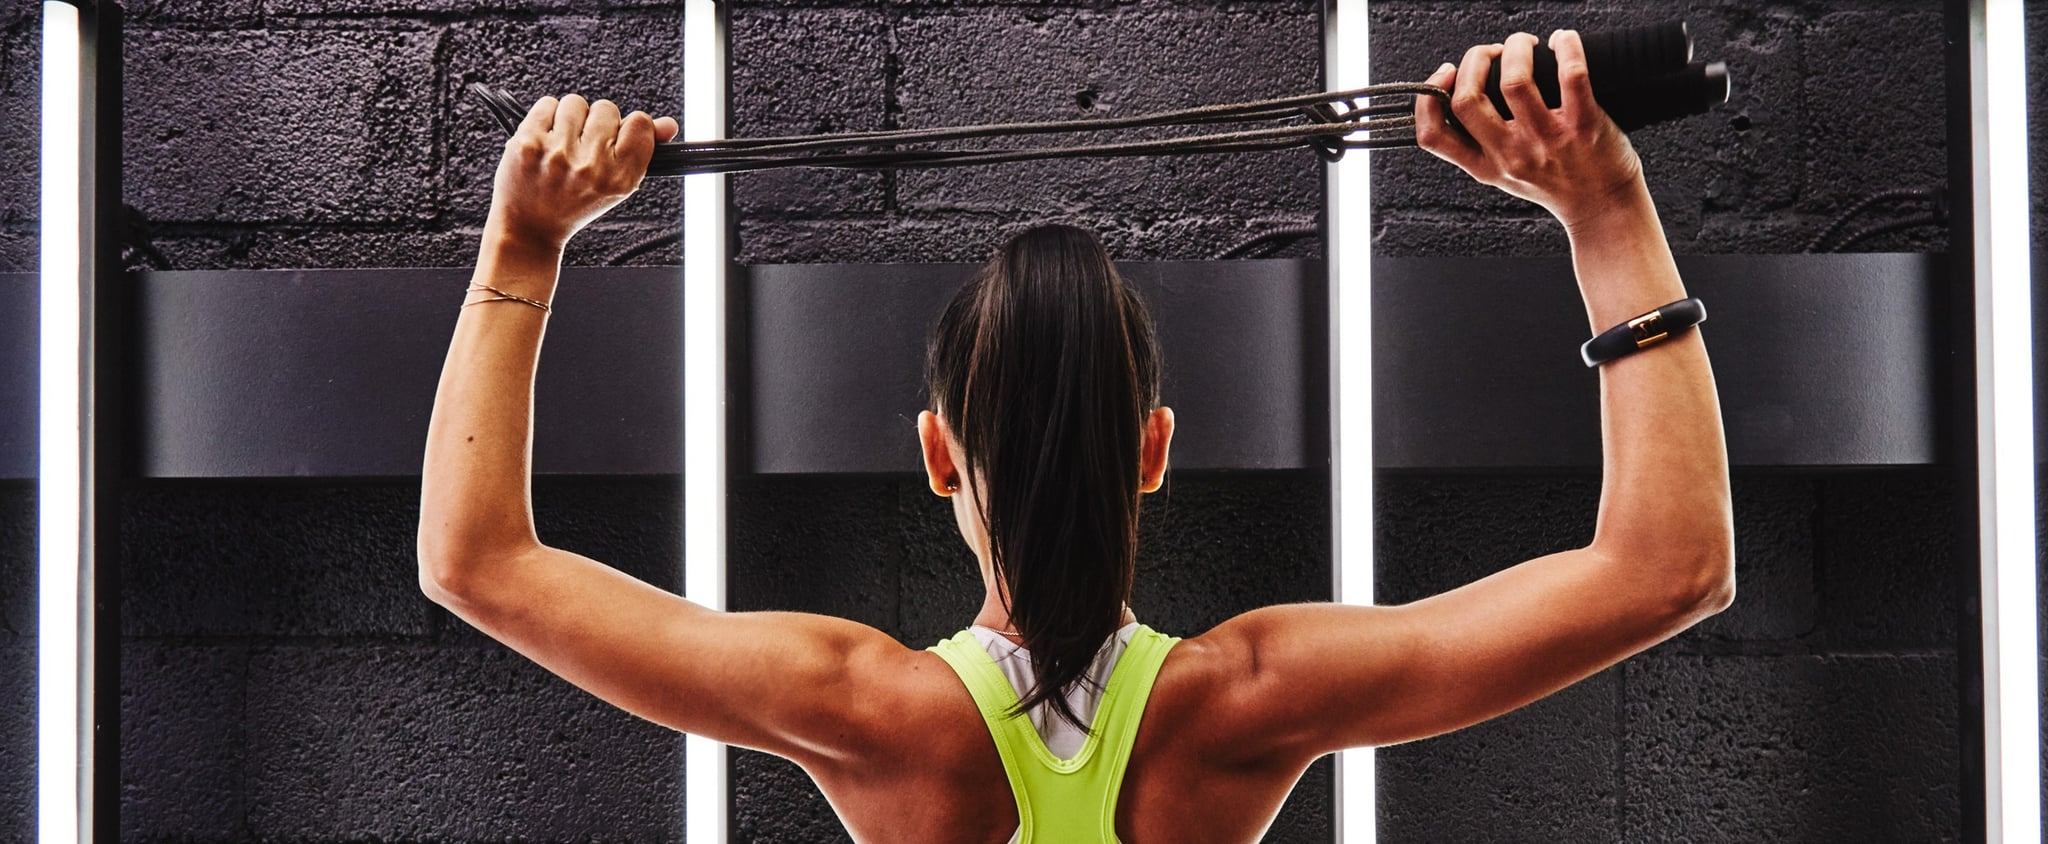 Burn Calories, Build Muscle, and Lose Weight With This 10-Minute Workout